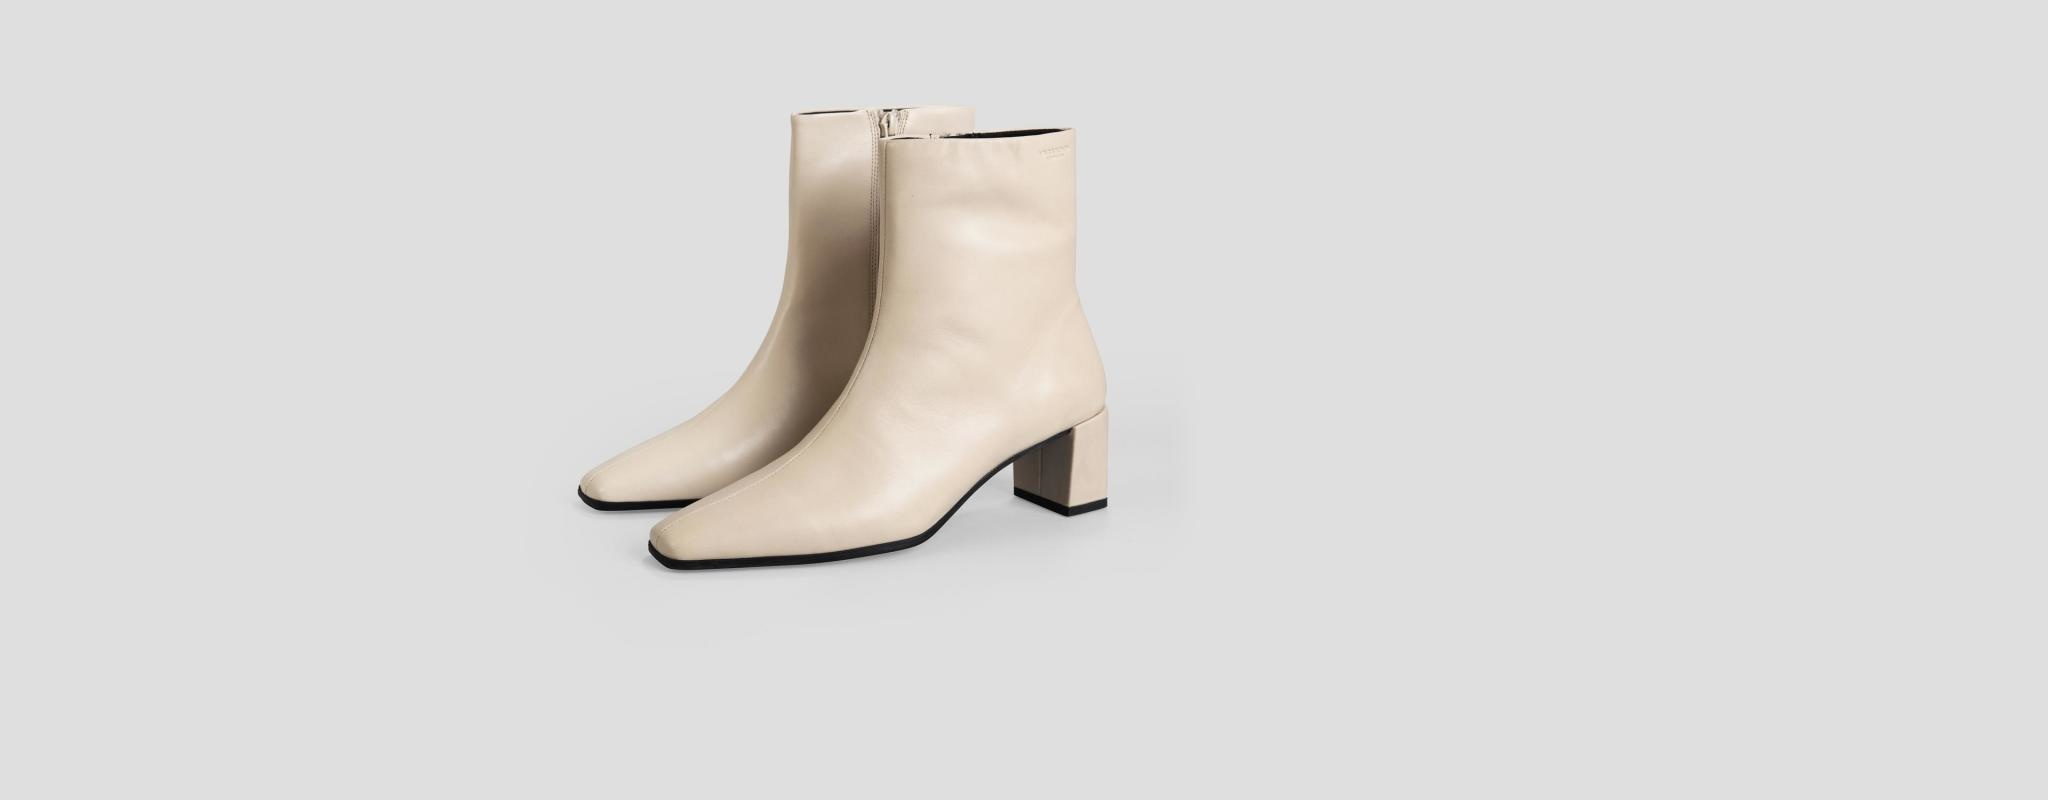 Tessa Toffee Leather Women Boots-1